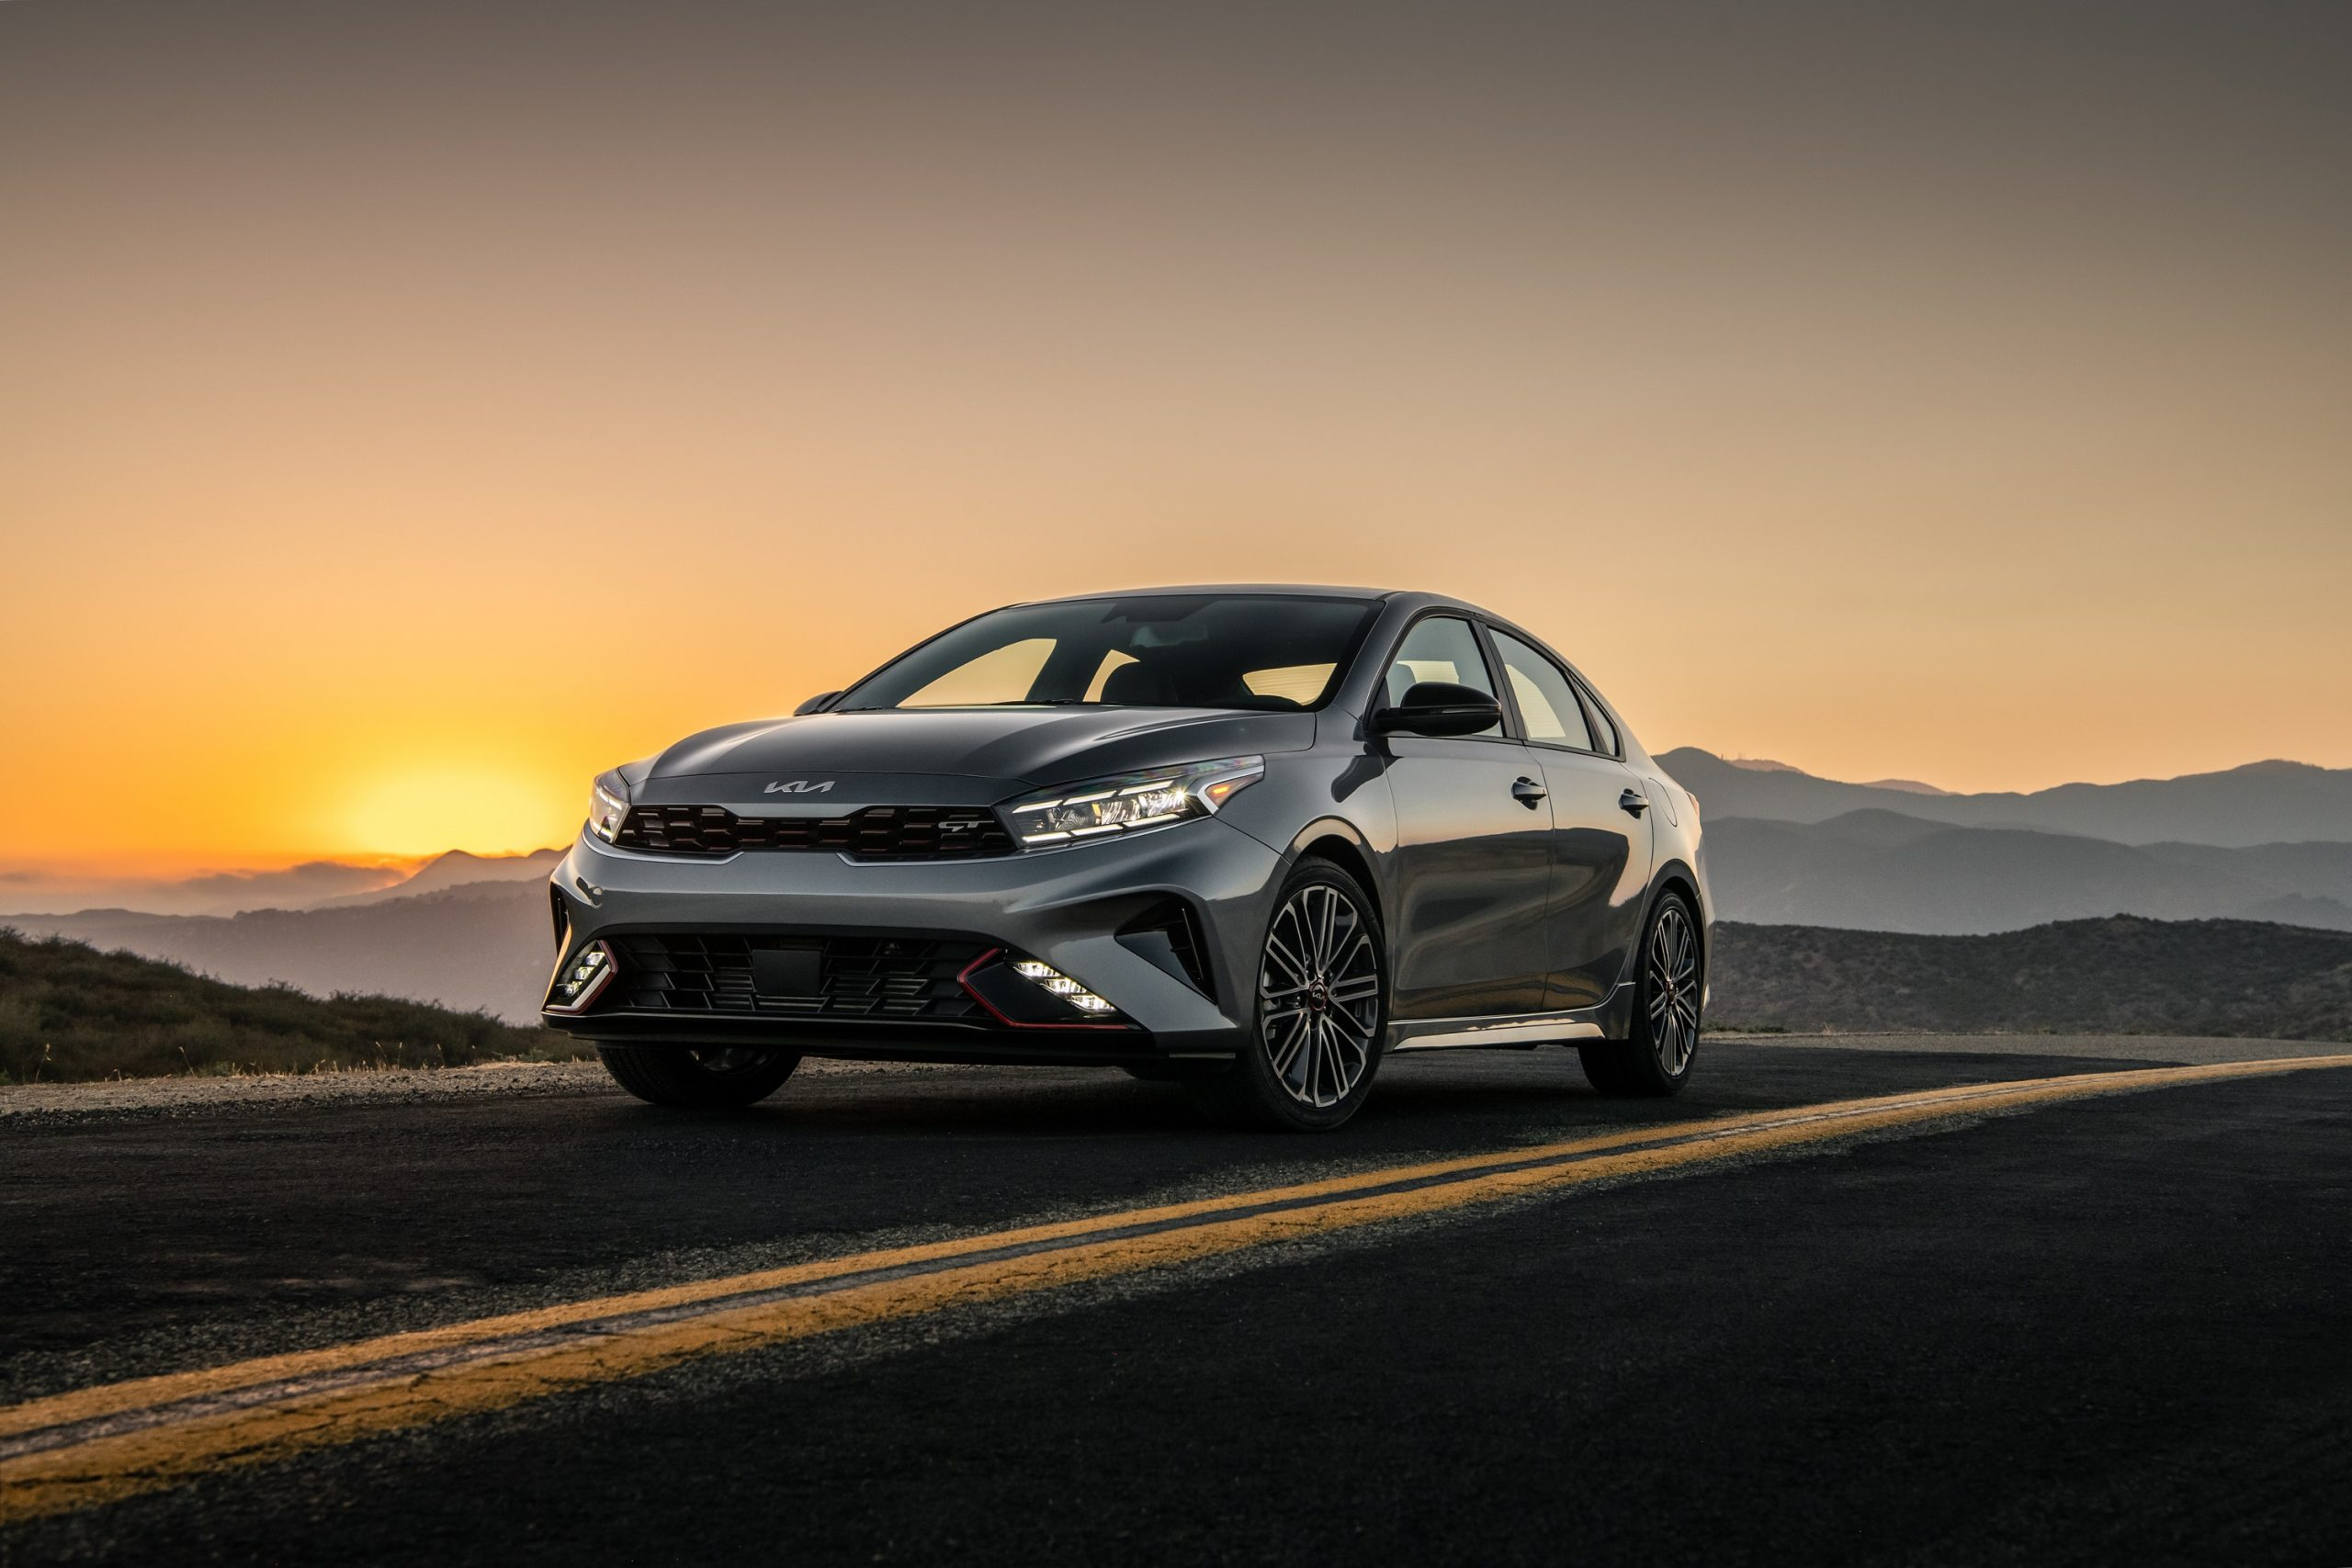 The 2022 Kia Forte GT shot at sunset on a mountain road from the front 3/4 angle